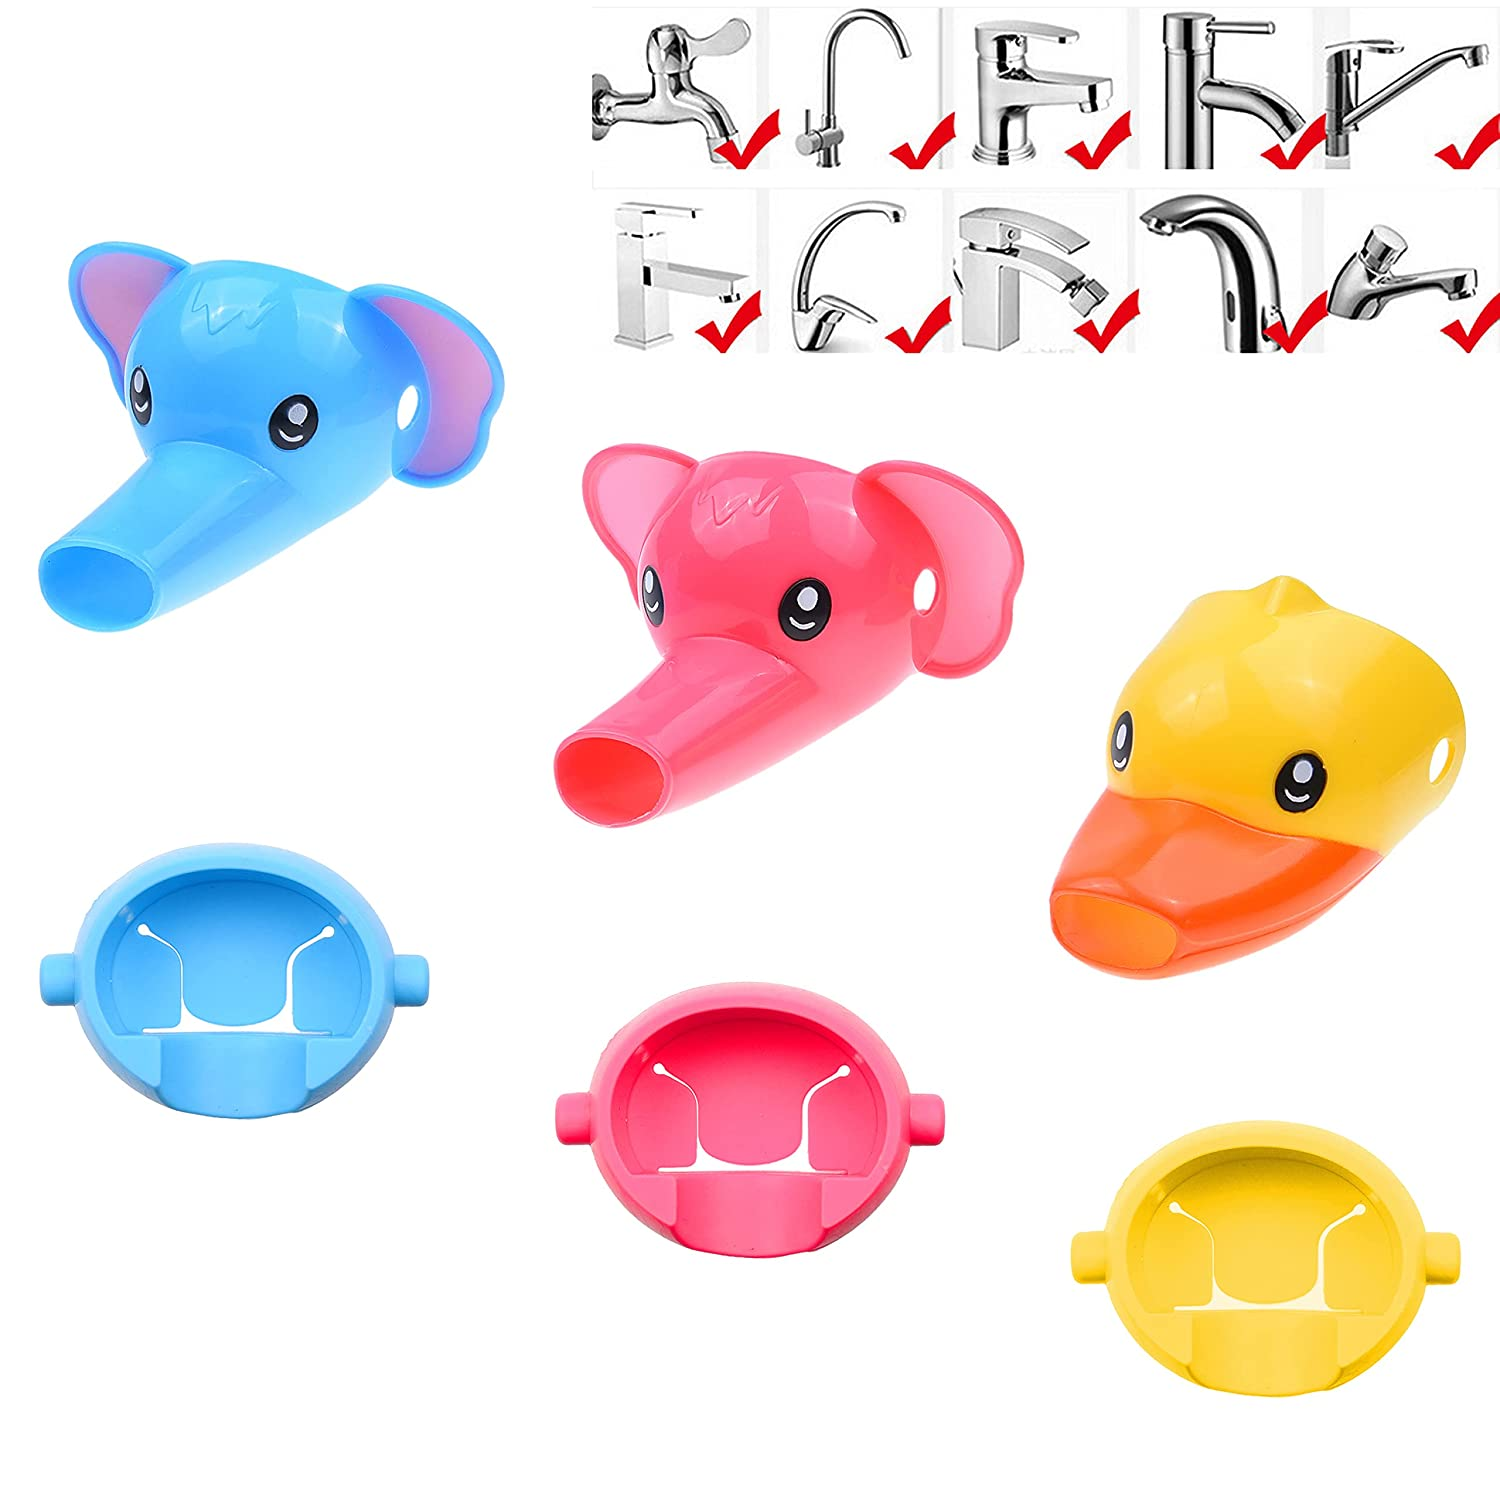 Kare & Kind Animal Shaped Faucet Extenders - 3 Pack - Fun Water Spouts for Toddlers, Kids, Children - Promotes Personal Hygiene and Handwashing - Colorful Yellow Duck, Pink and Blue Elephant Design